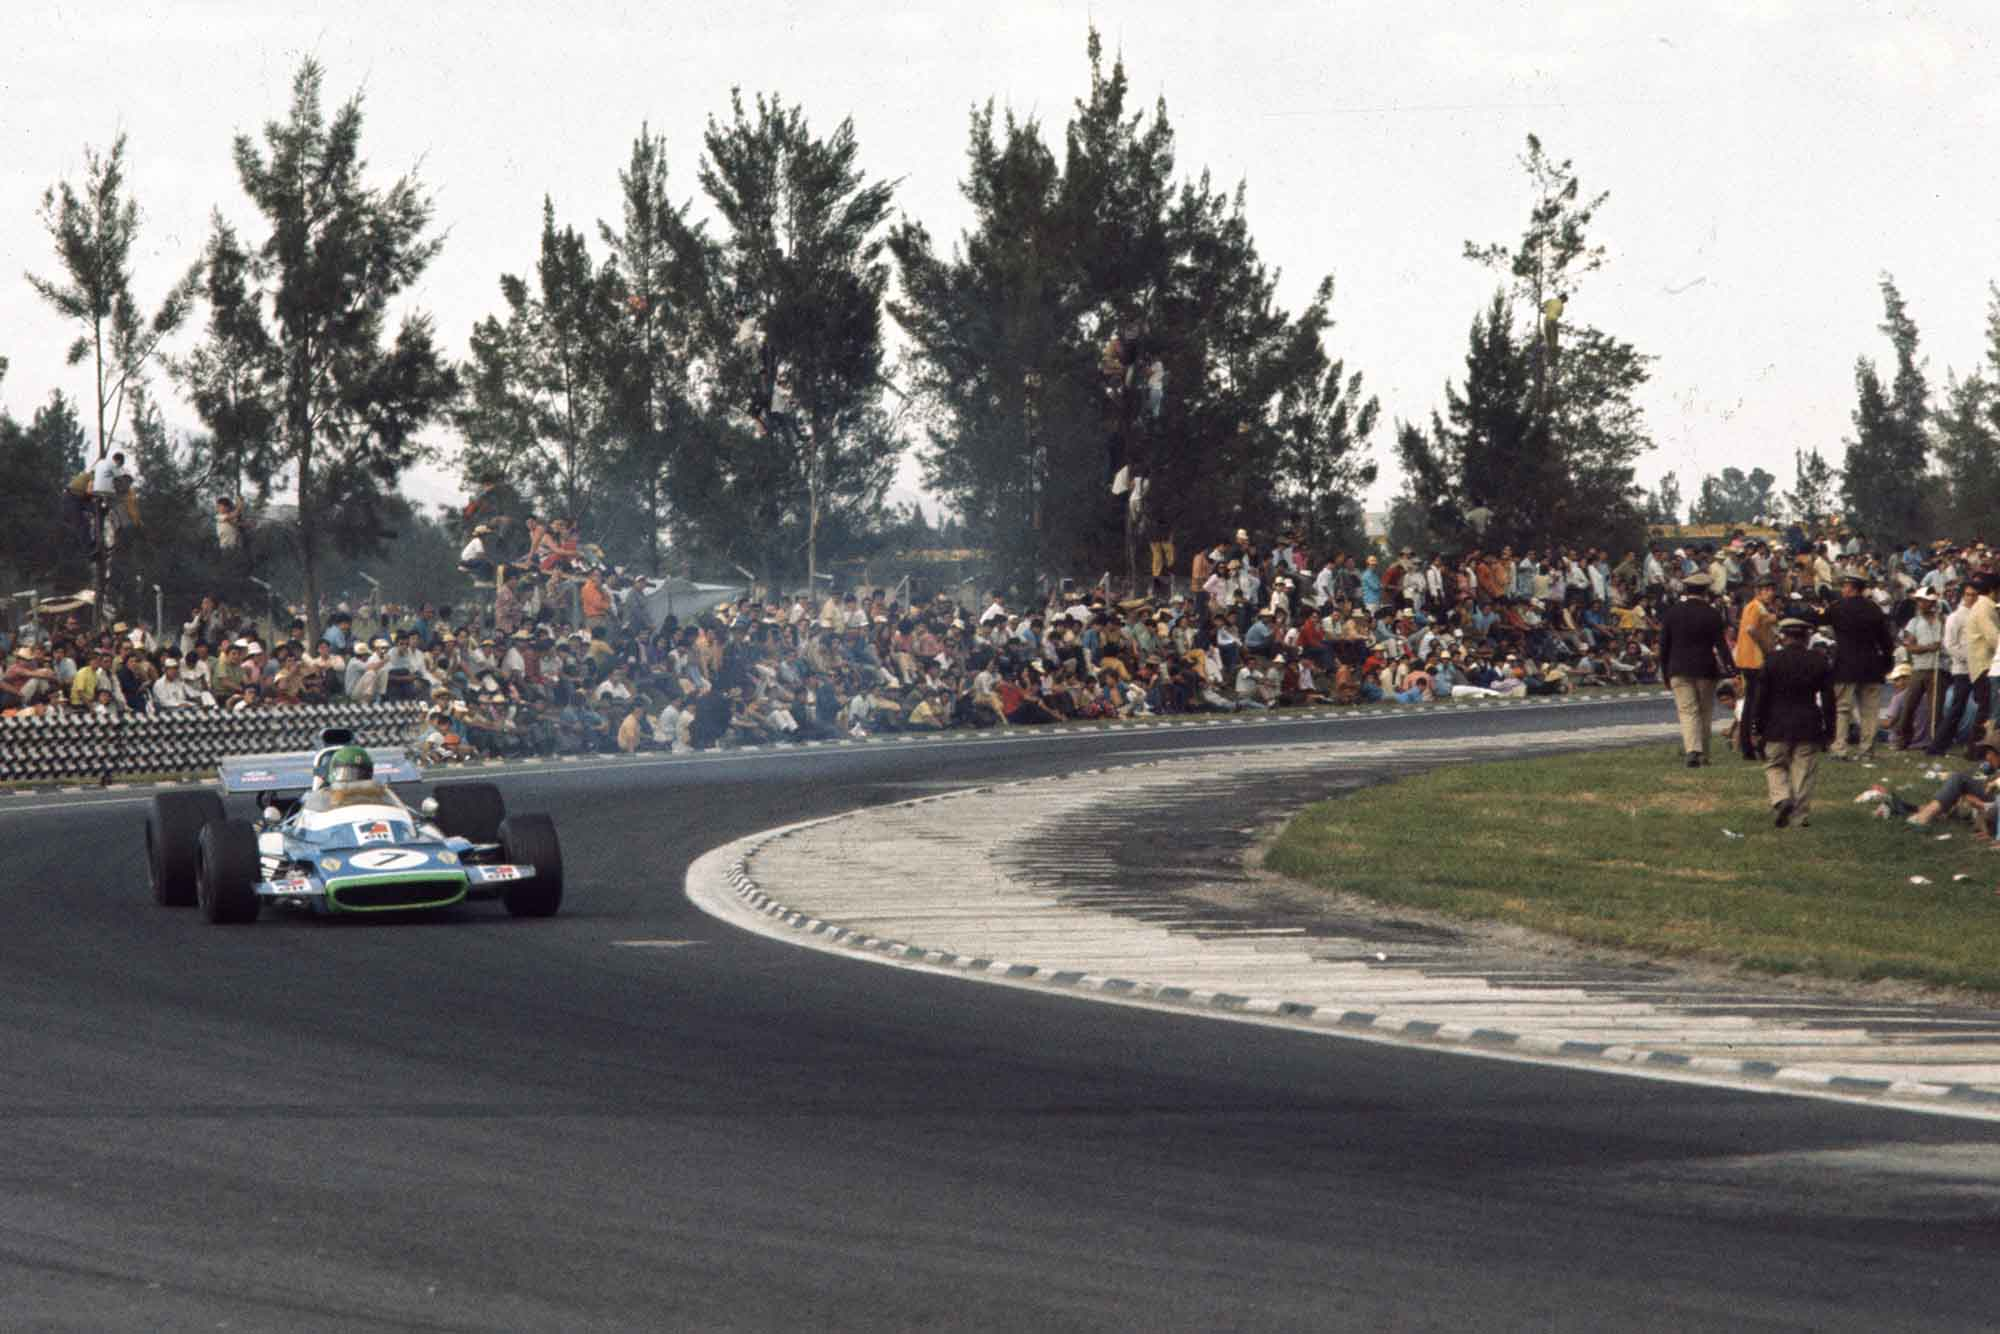 Henri Pescarolo, Matra MS120, 9th during the 1971 Mexican GP at Autodromo Hermanos Rodriguez